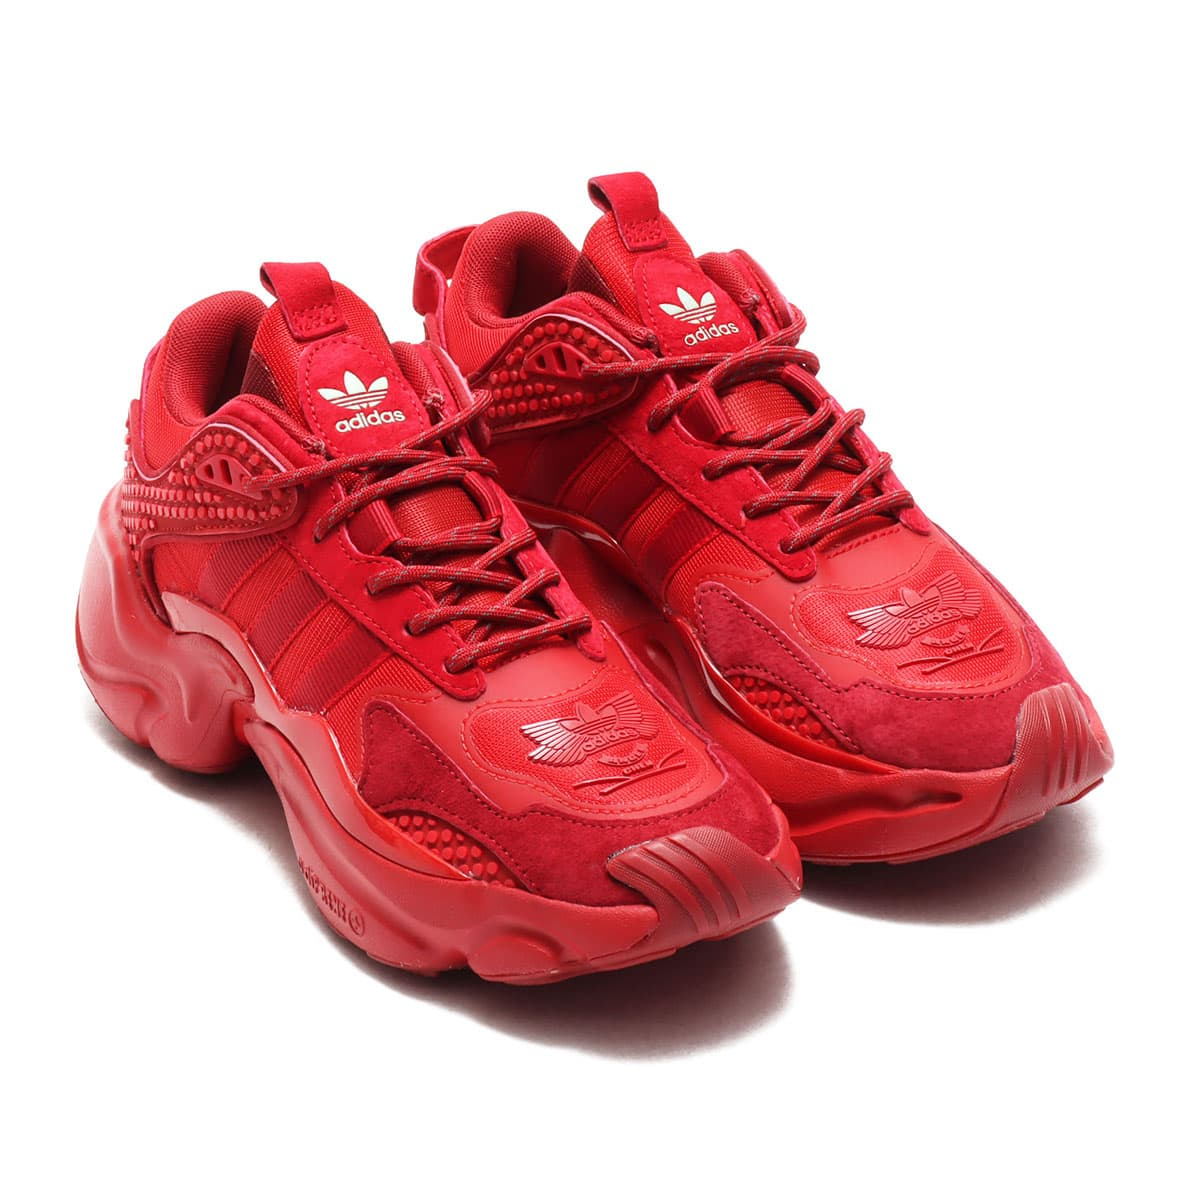 ANGEL CHEN x adidas MAGMUR RUNNER W AC SCARLET/BOLD RED/POWER RED 20SS-S_photo_large